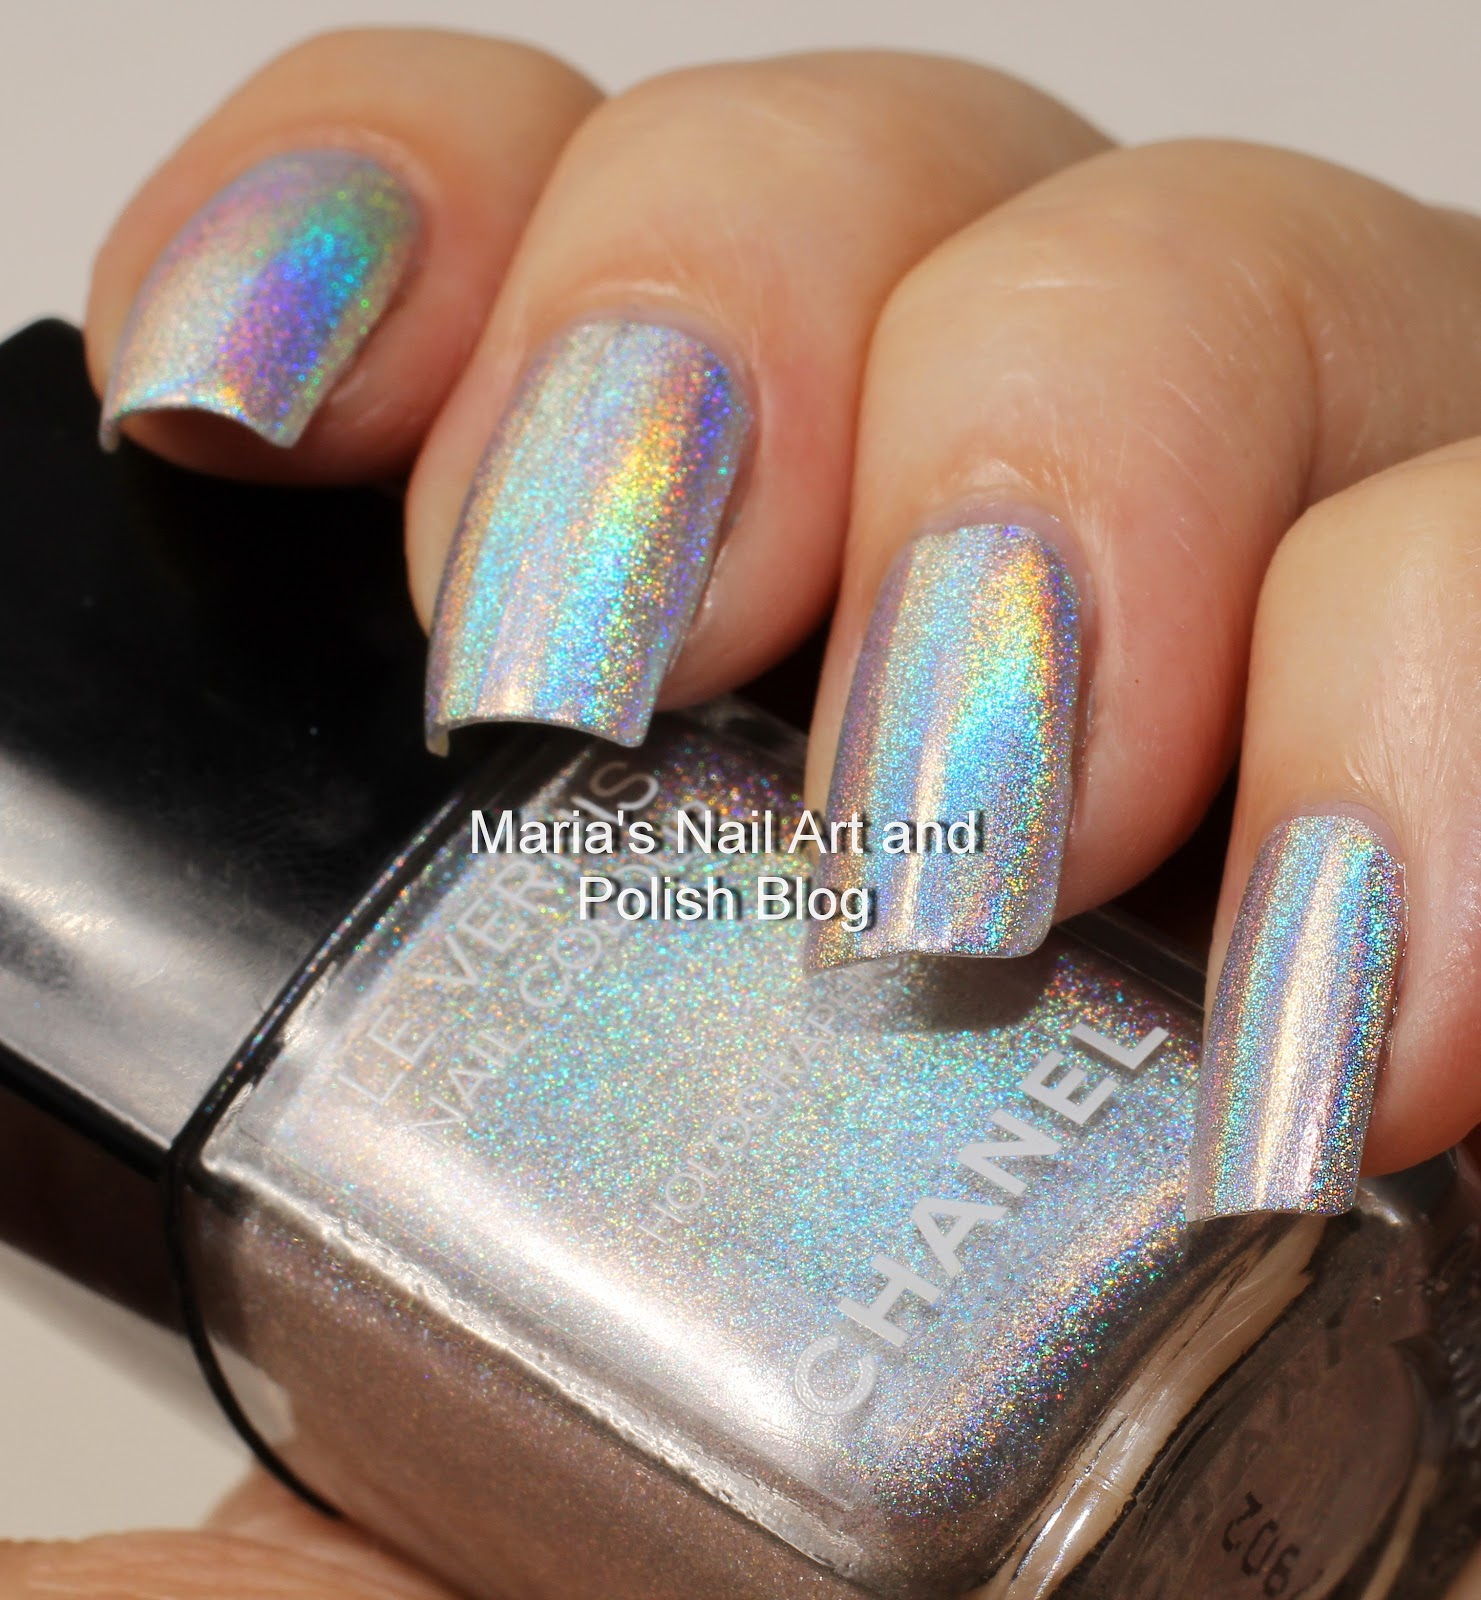 Marias Nail Art and Polish Blog: Chanel Holographic - Duo Platinum ...